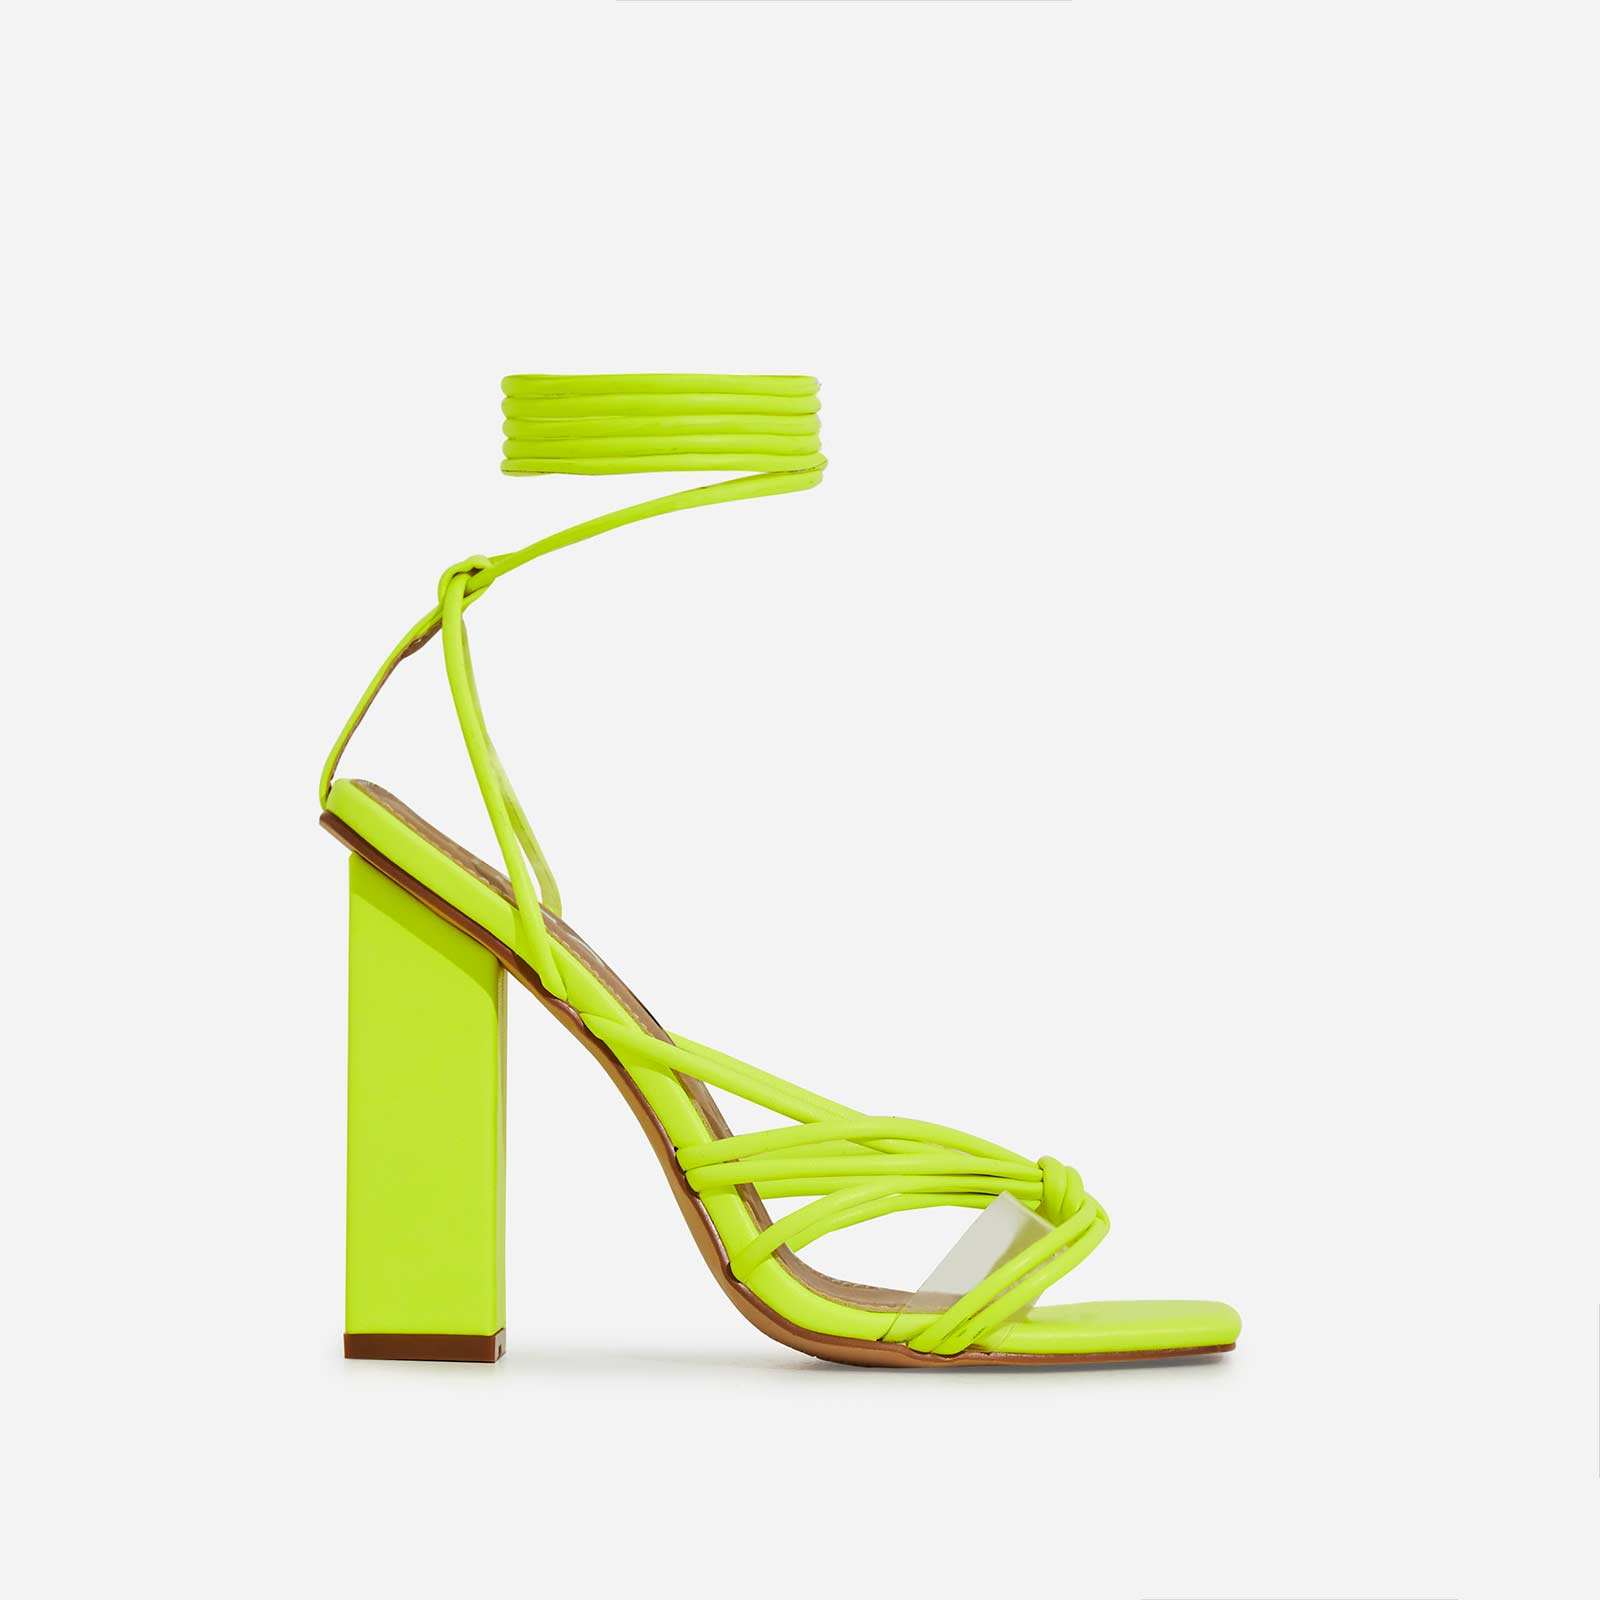 Neima Lace Up Square Toe Perspex Block Heel In Lime Green Faux Leather